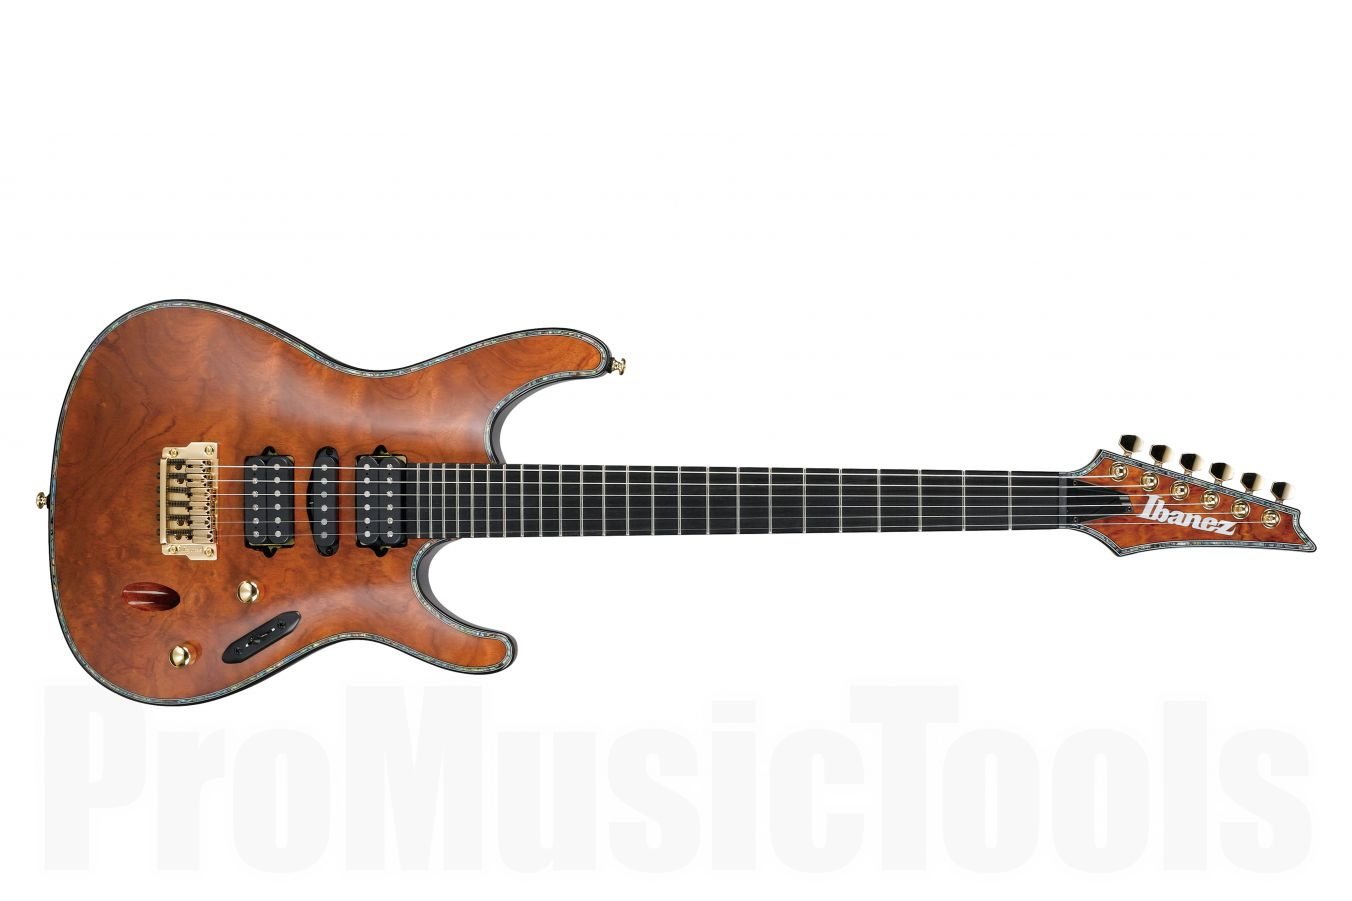 Ibanez SIX70FDBG NT - Natural - b-stock